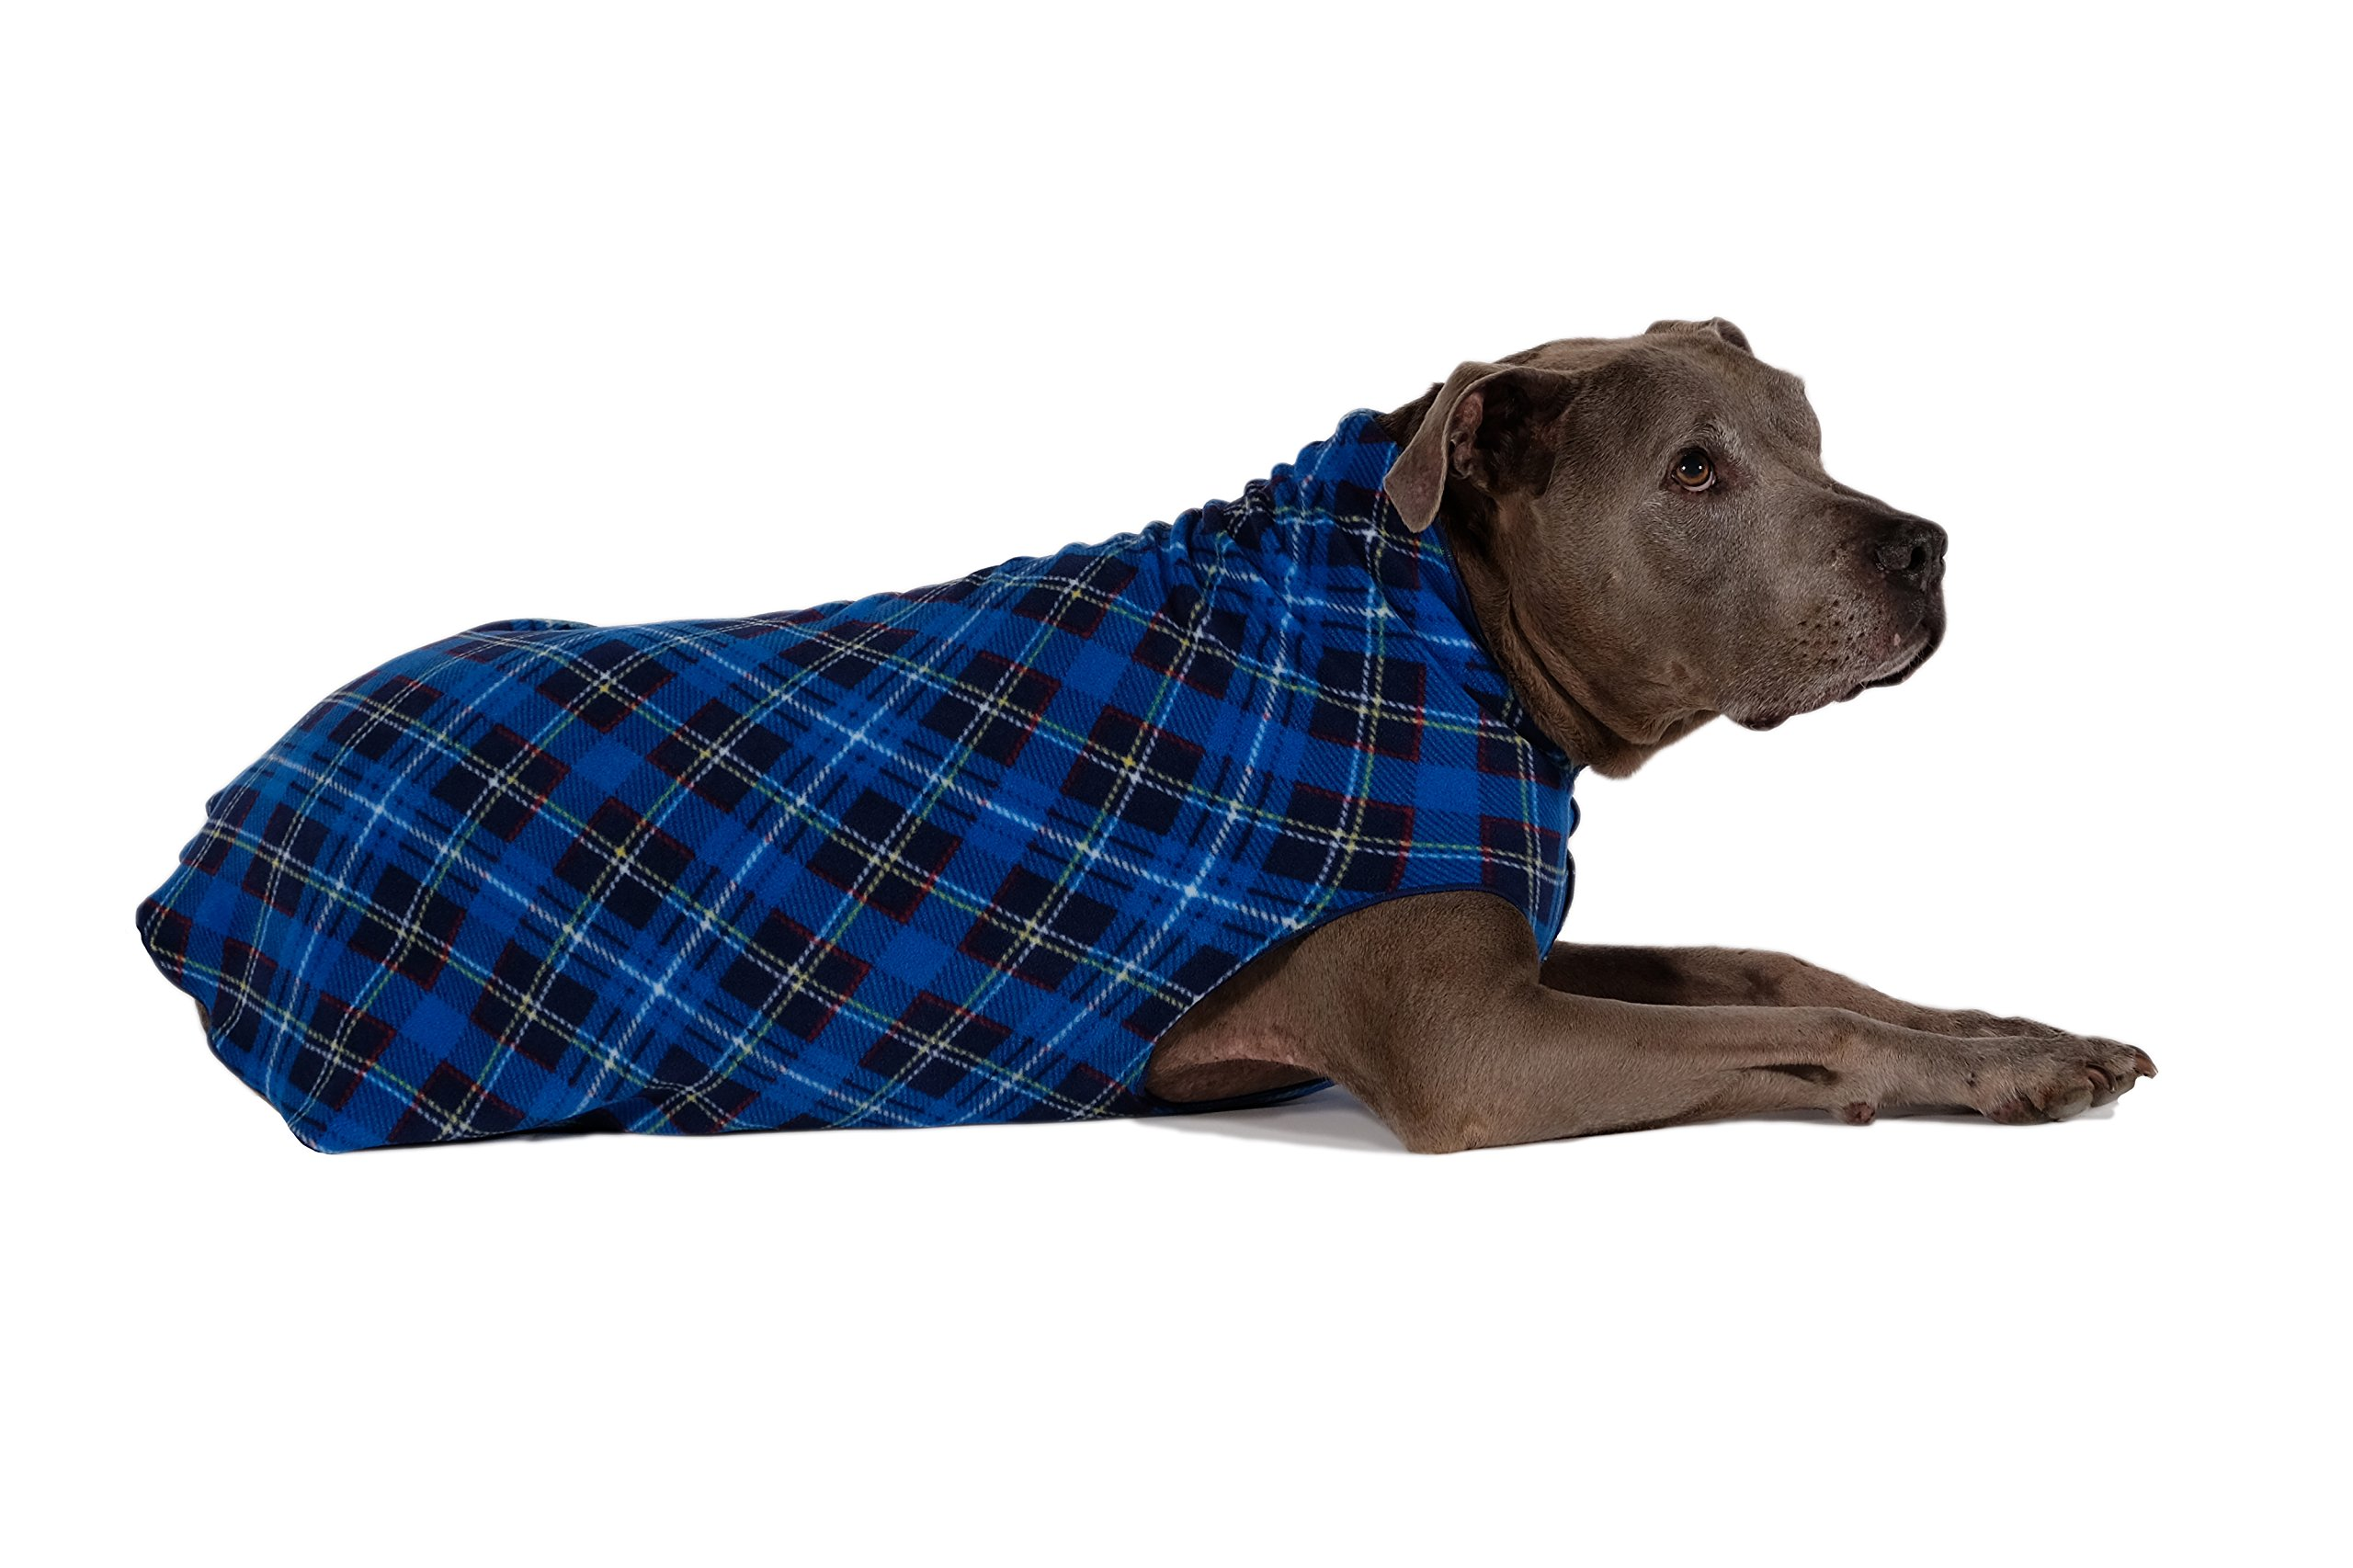 Gold Paw Stretch Fleece Dog Coat - Soft, Warm Dog Clothes, Stretchy Pet Sweater - Machine Washable, Eco Friendly - All Season - Sizes 2-33, Blue Plaid, Size 14 by Gold Paw